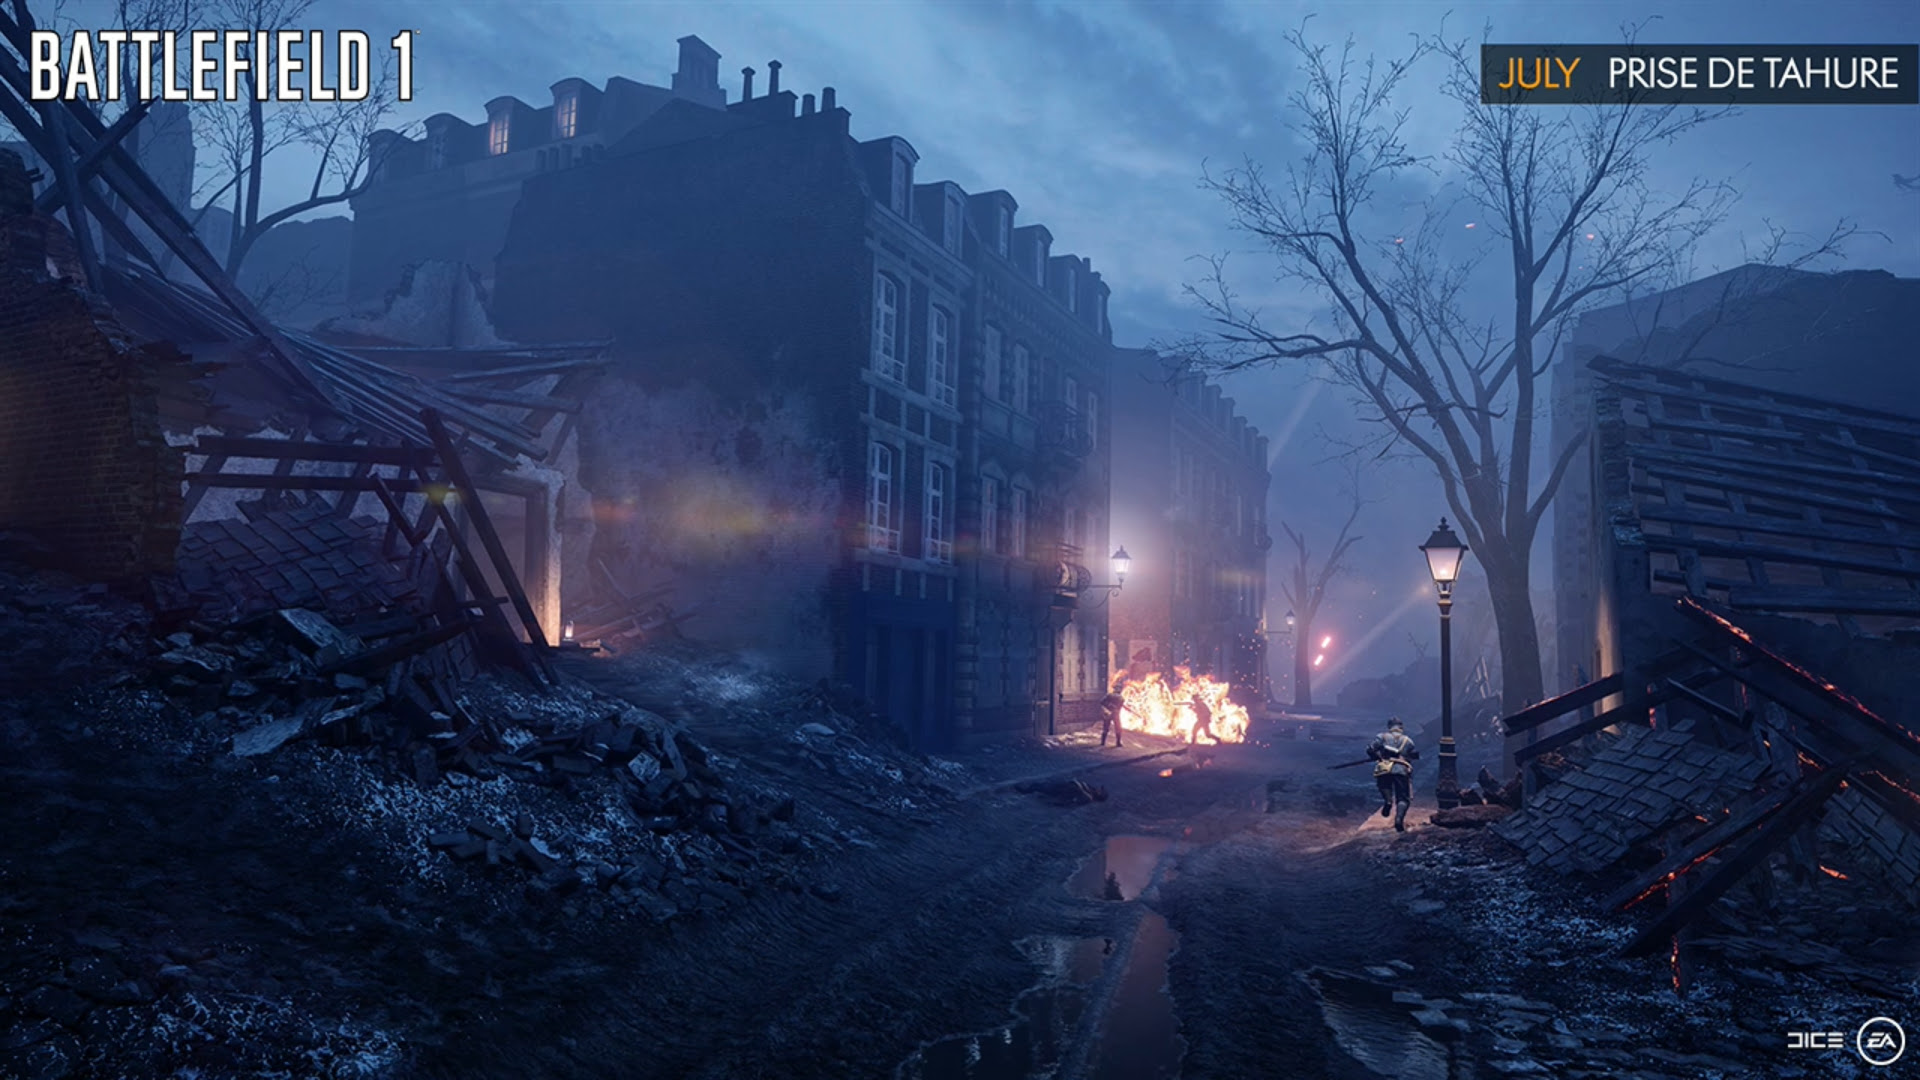 Battlefield 1 is getting nighttime maps, Russian DLC, and a new competitive mode screenshot